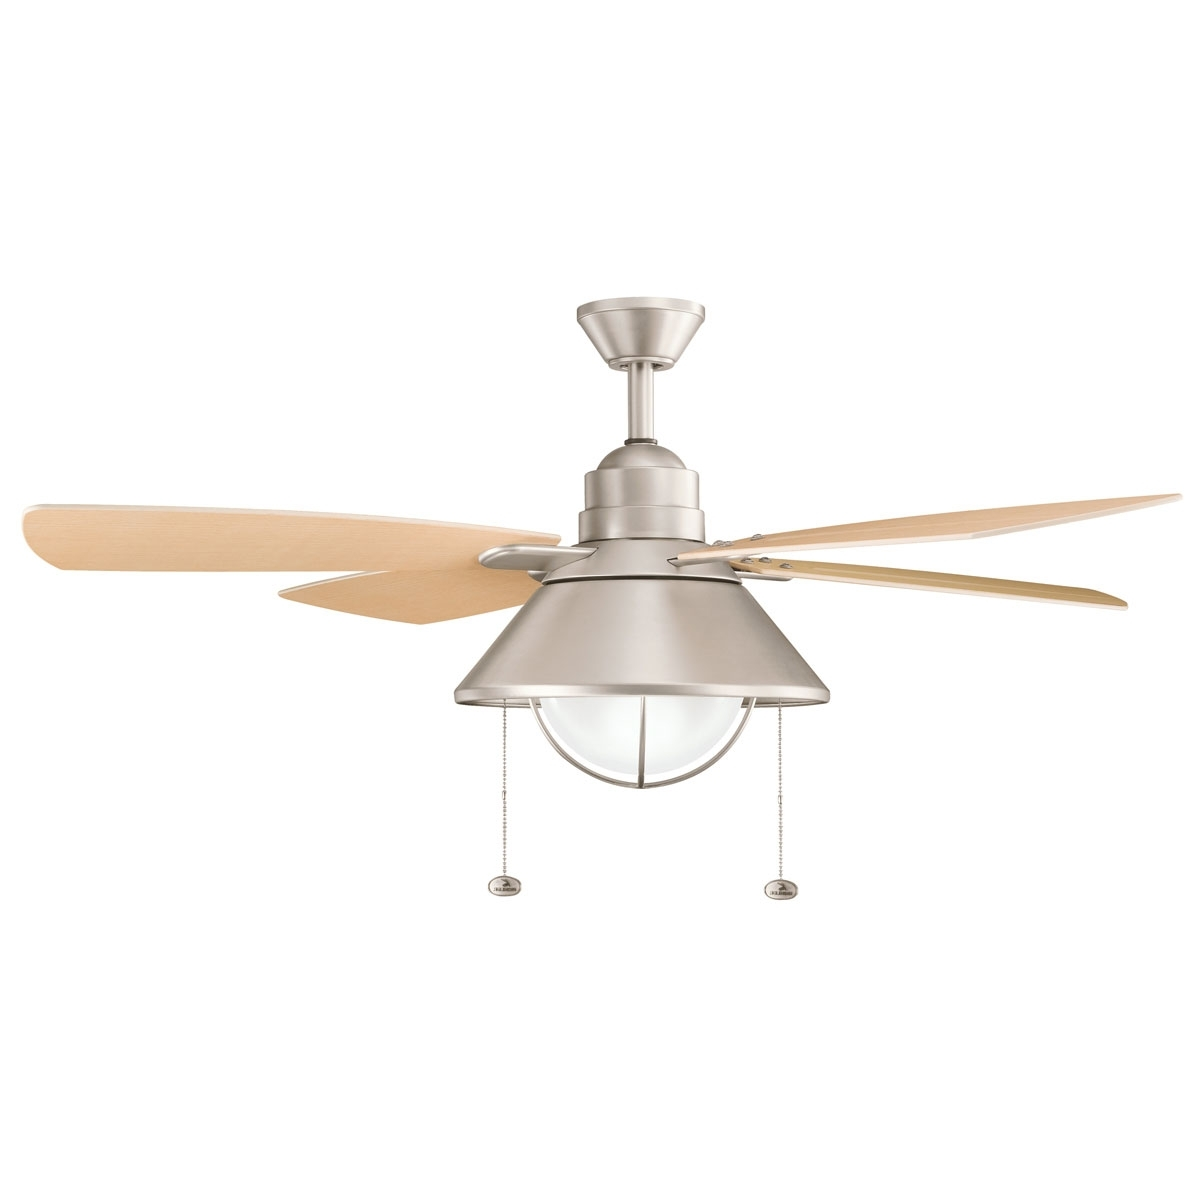 Nautical Ceiling Fans With Lights – Photos House Interior And Fan Throughout Newest Nautical Outdoor Ceiling Fans (View 7 of 20)